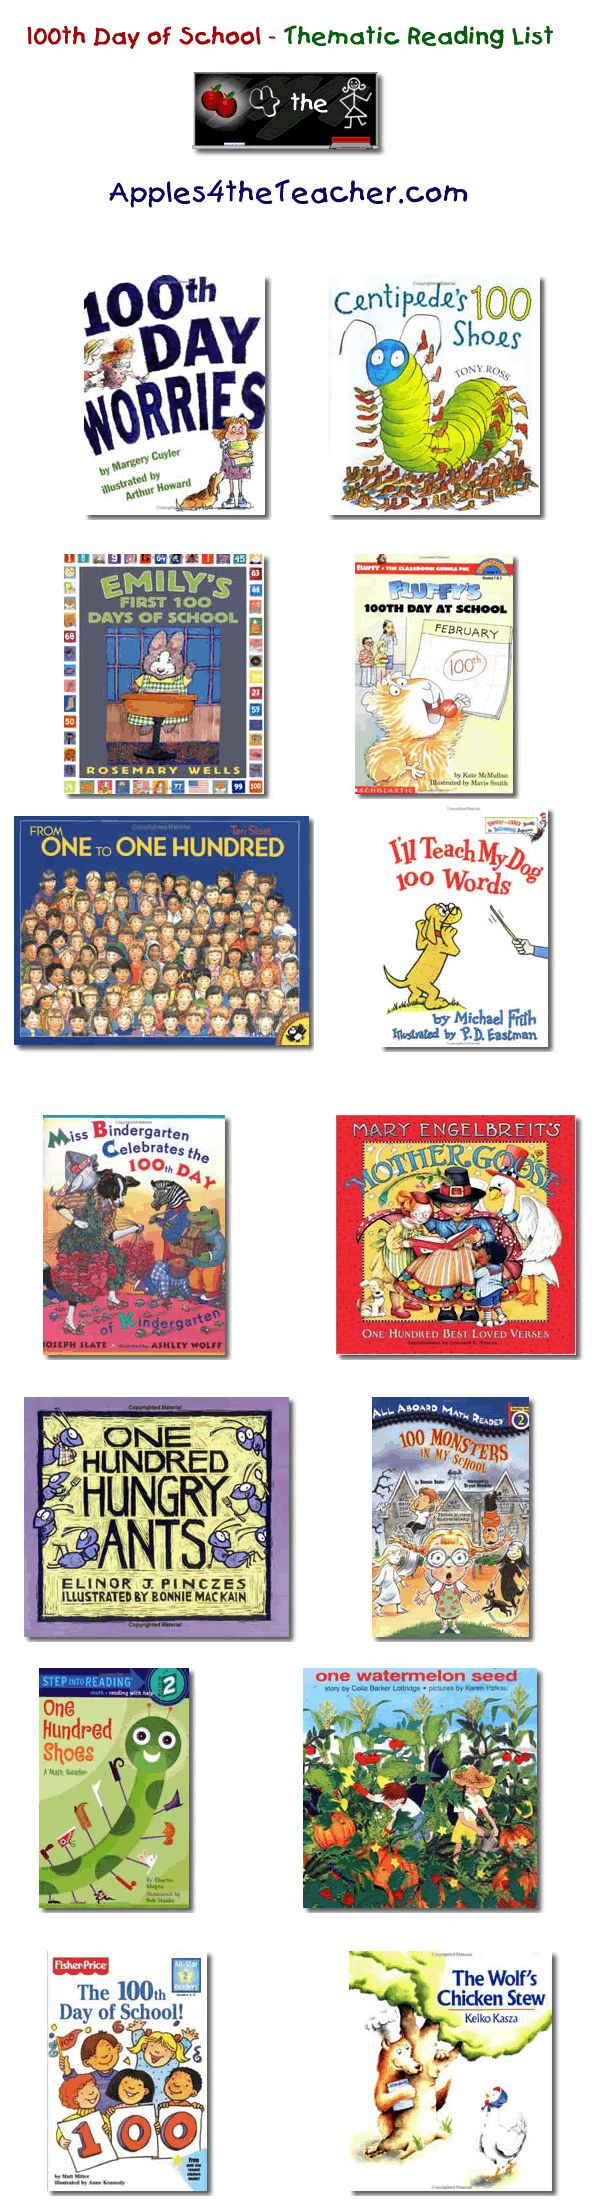 Suggested thematic reading list for the 100th Day of School - One Hundredth Day of School books for kids. http://www.apples4theteacher.com/holidays/100th-day-of-school/kids-books/